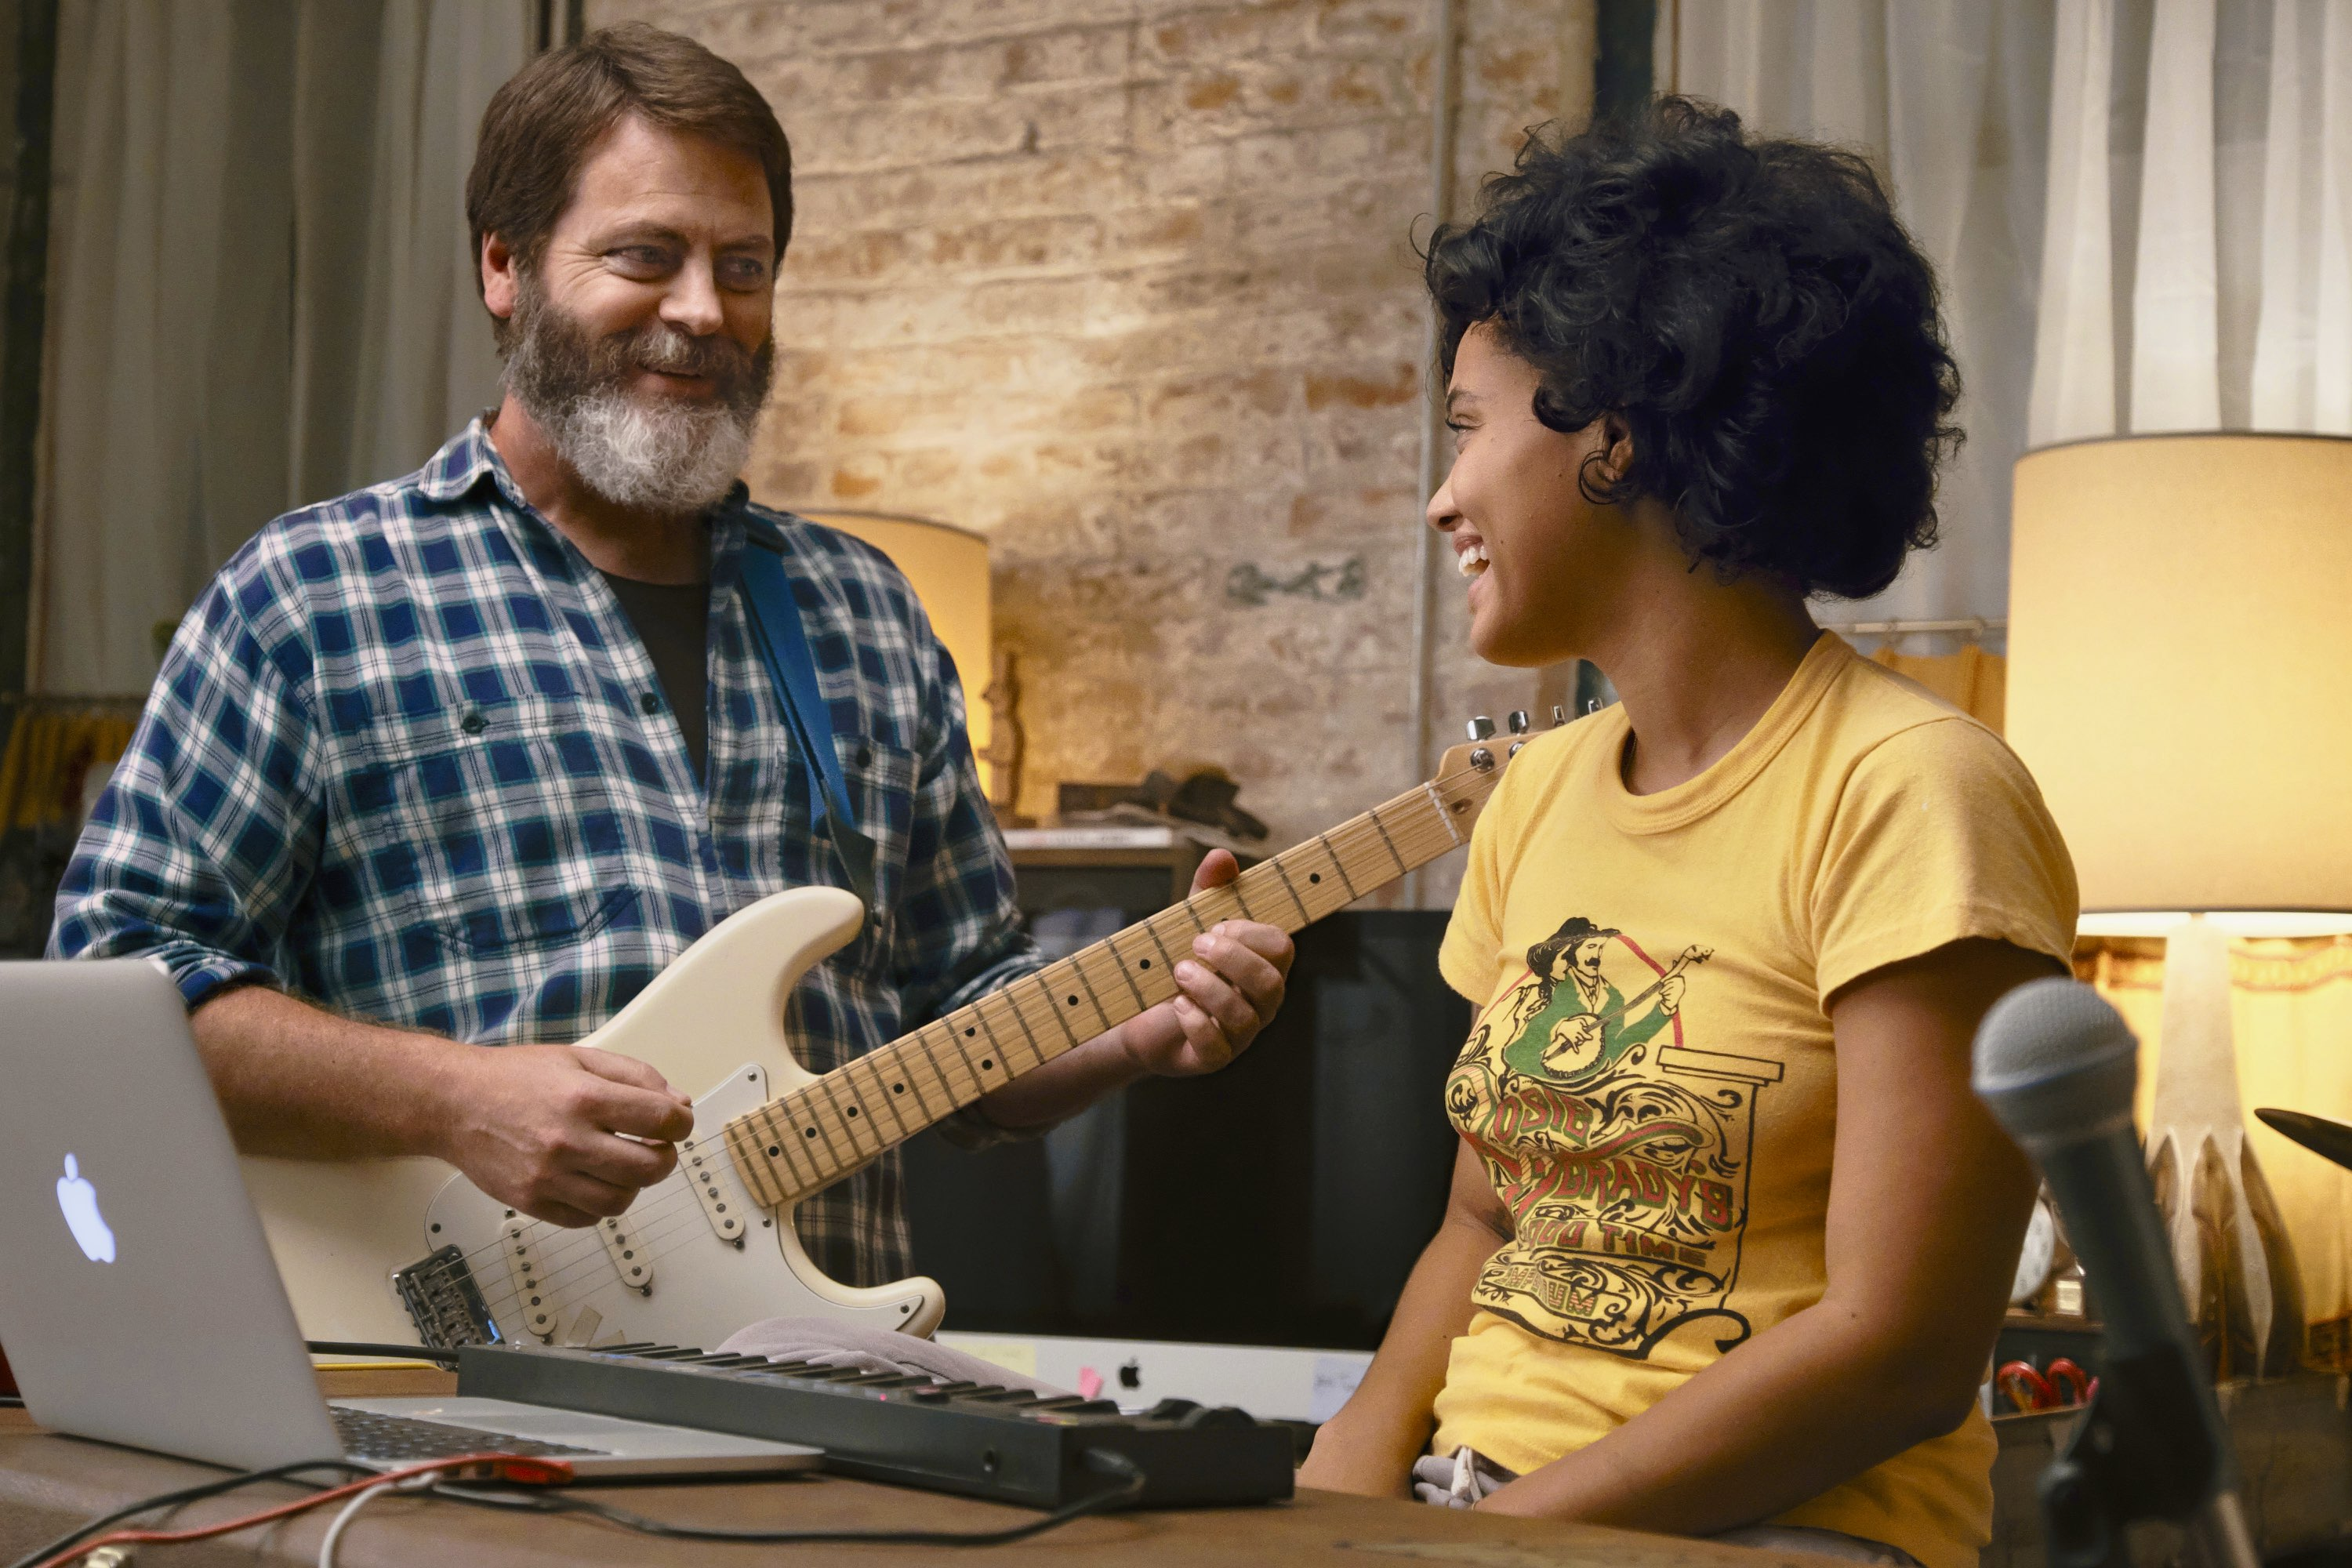 Hearts Beat Loud - In cinemas this summer